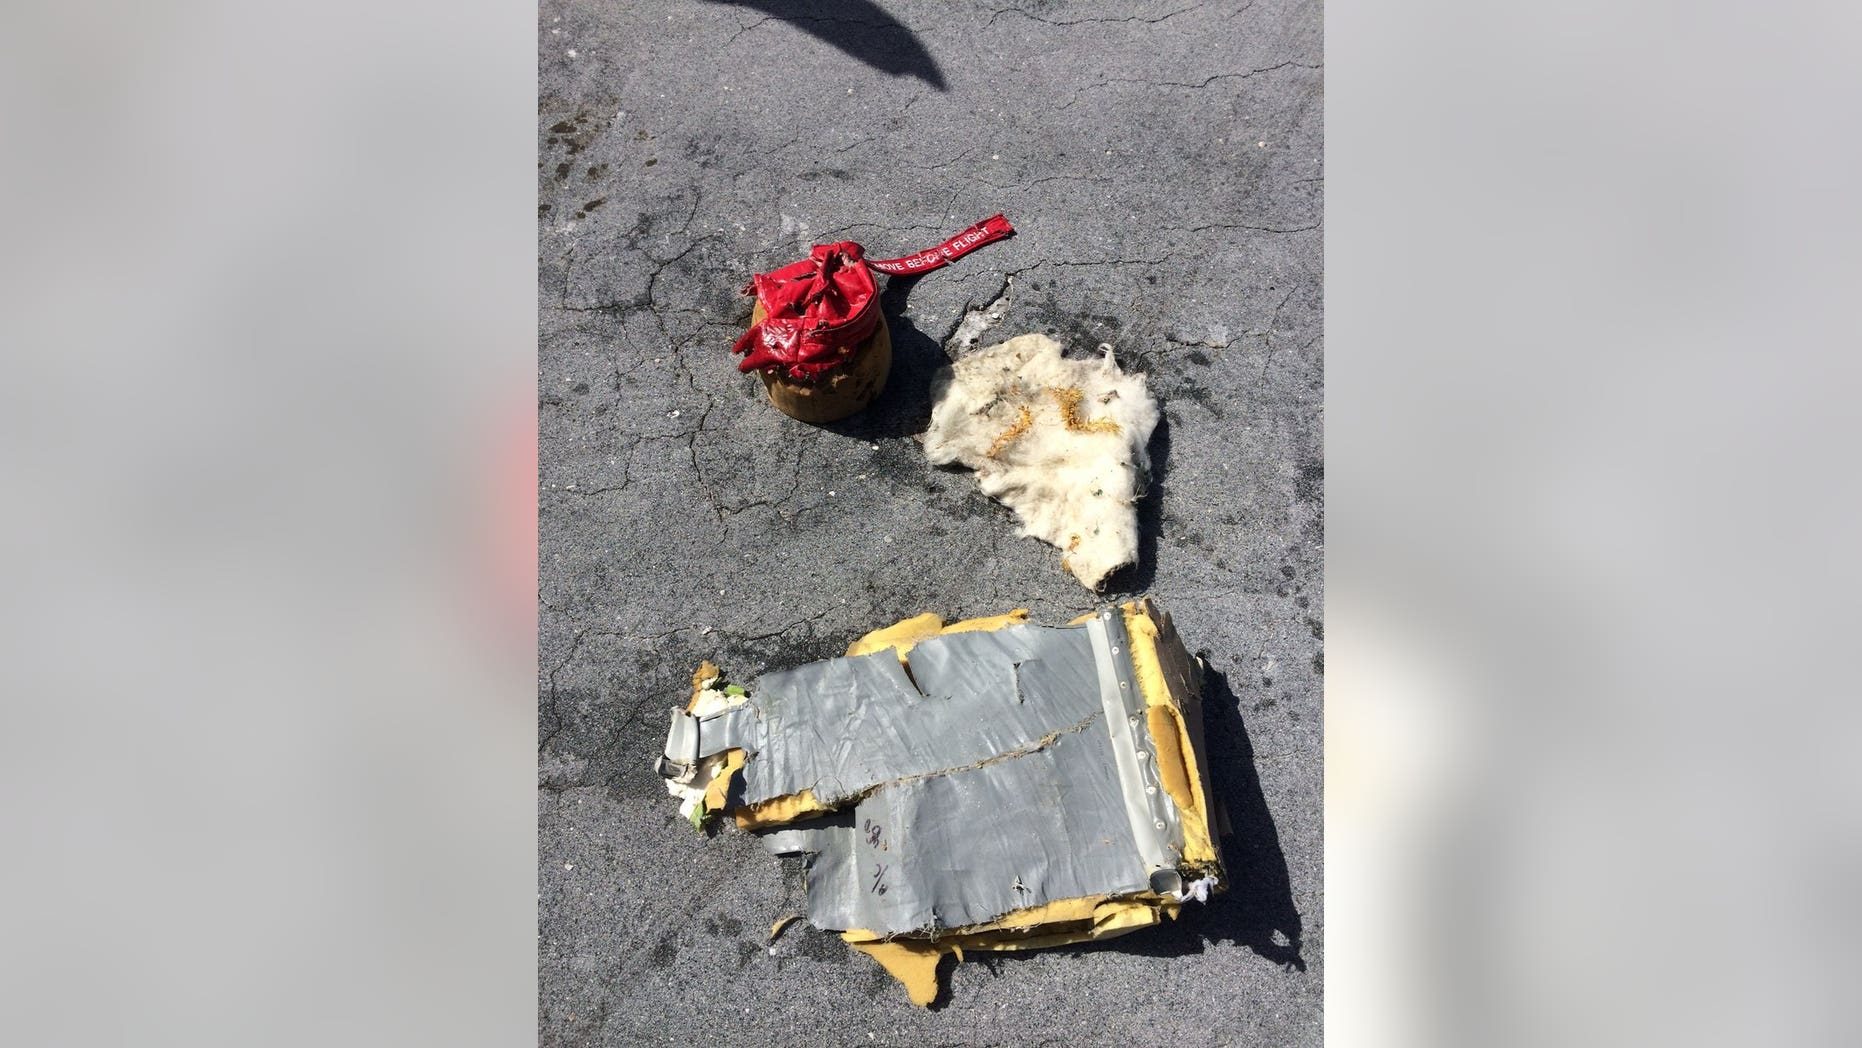 The debris found Tuesday were confirmed to be materials that were part of the MU-2B airplane that went missing a day before. (United States Coast Guard)